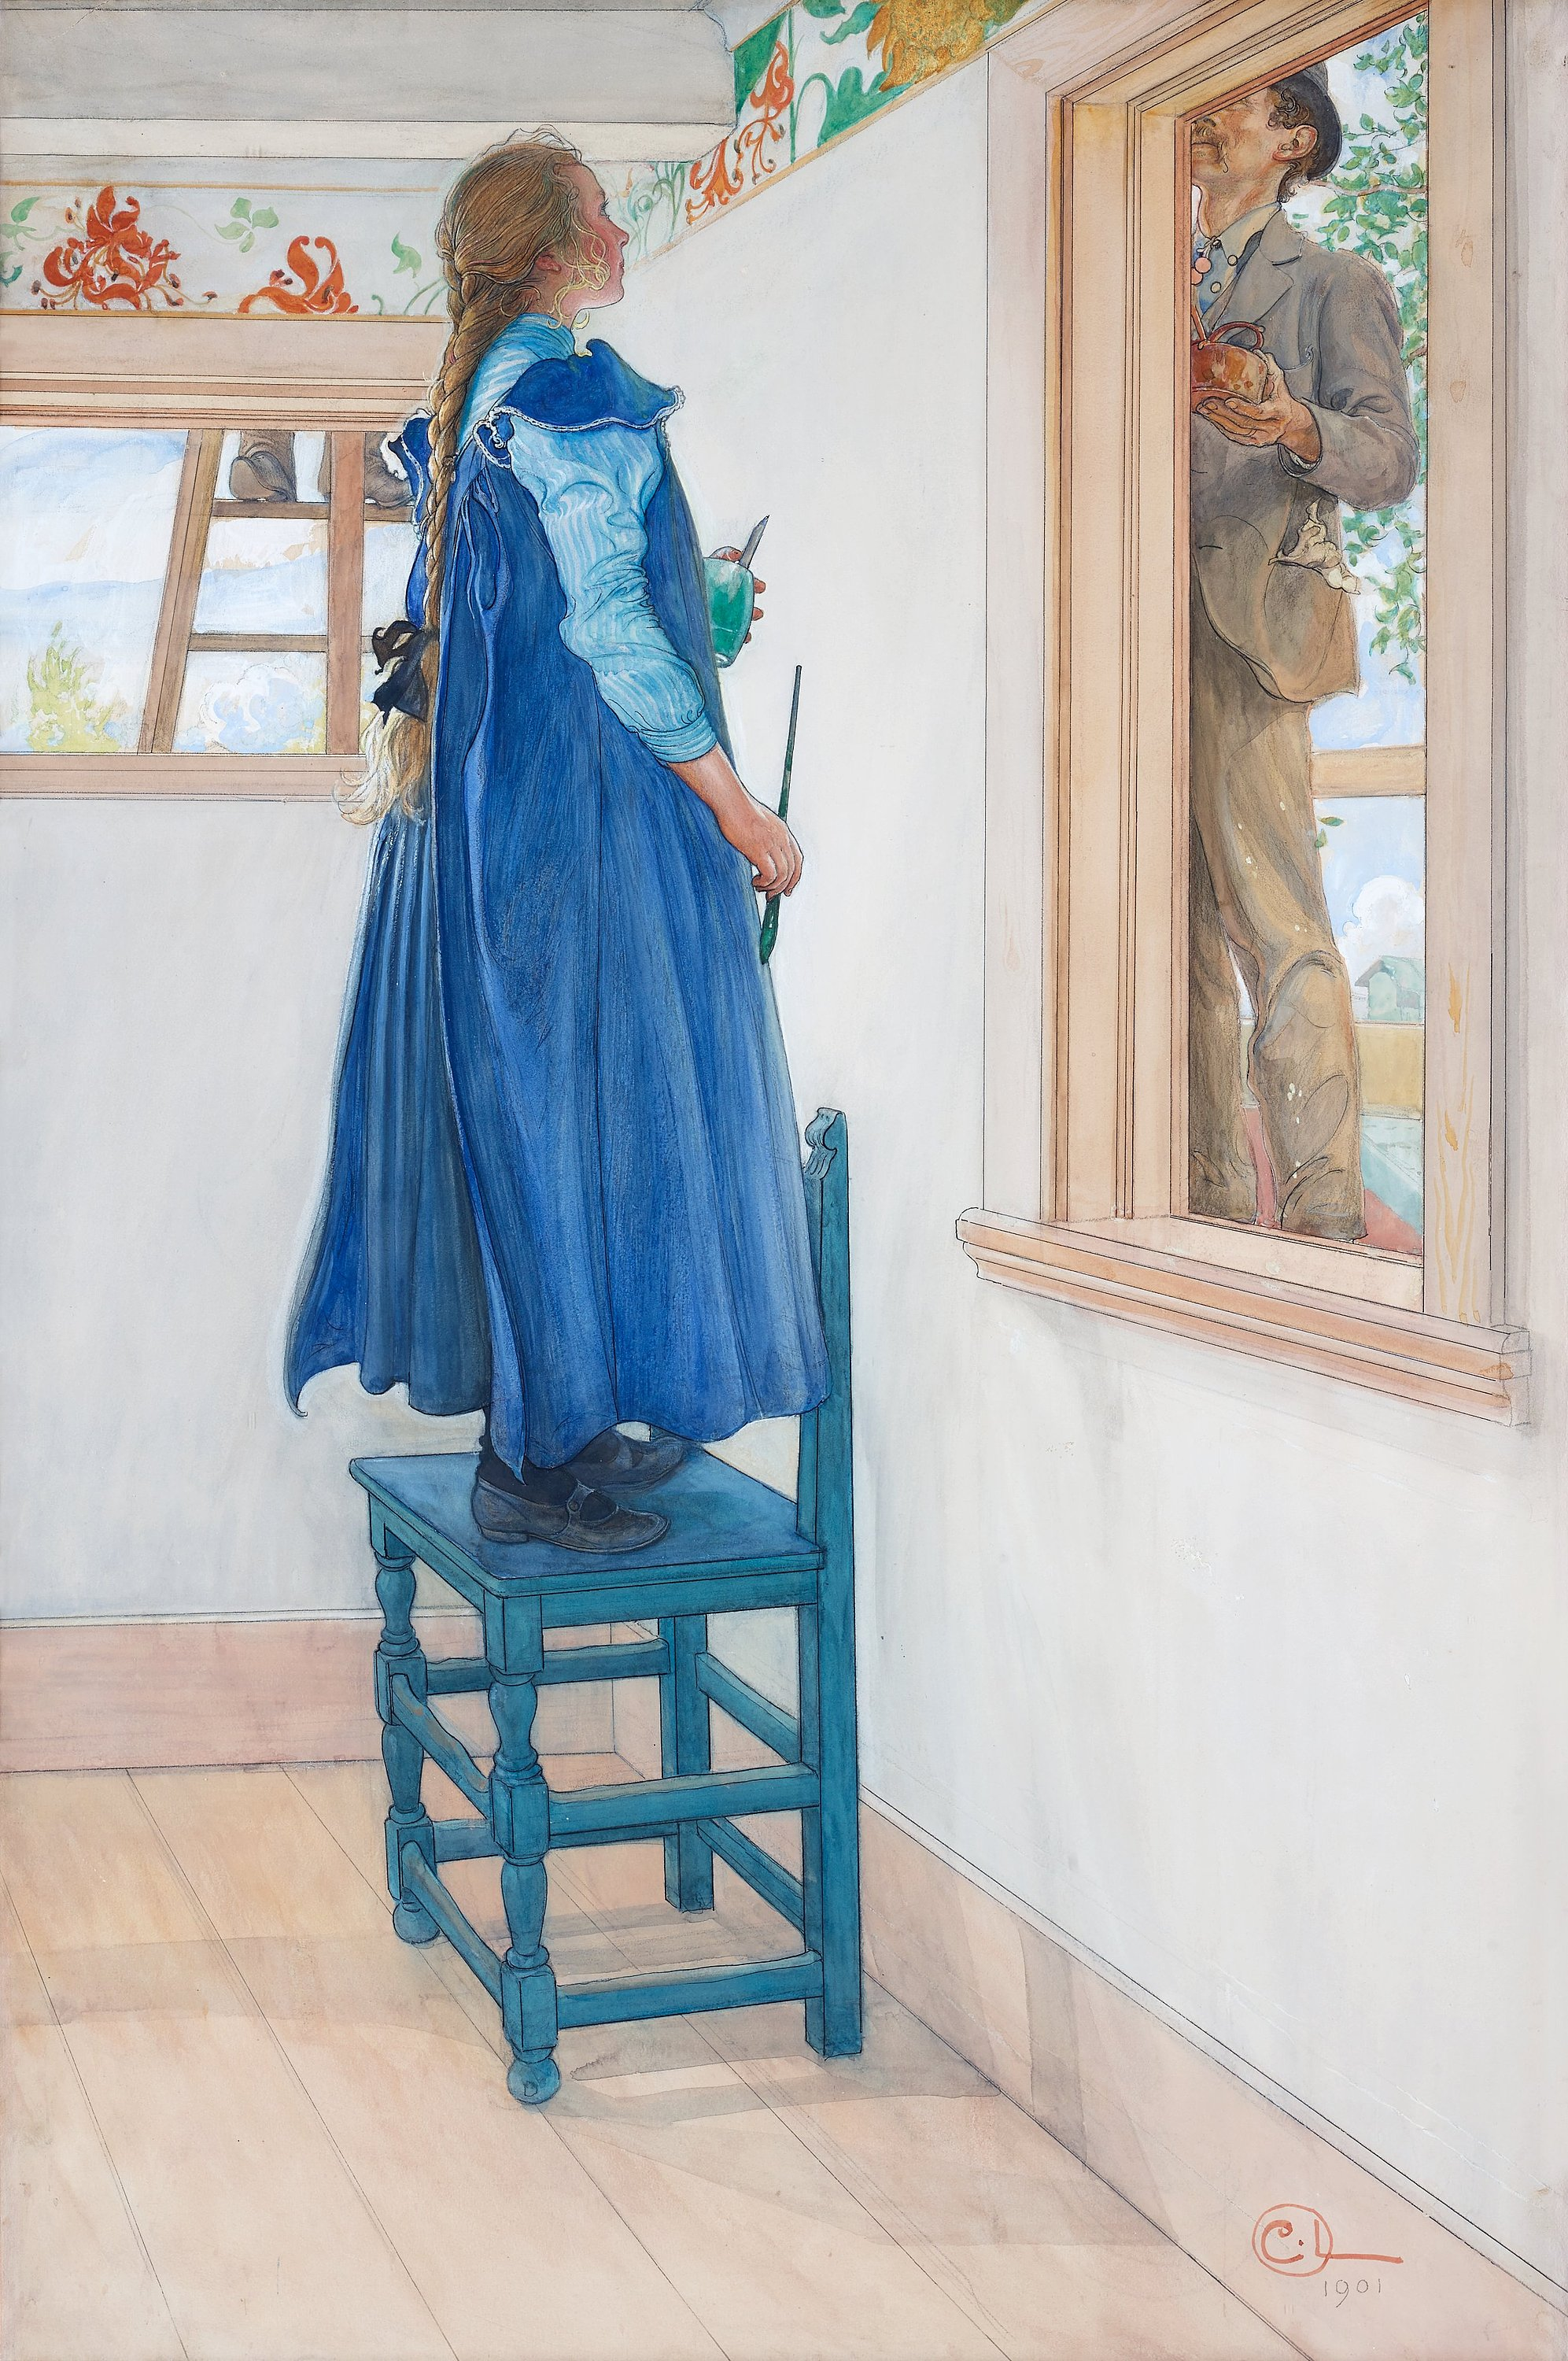 Carl Larsson Quot Suzanne And Another Quot Bukowskis